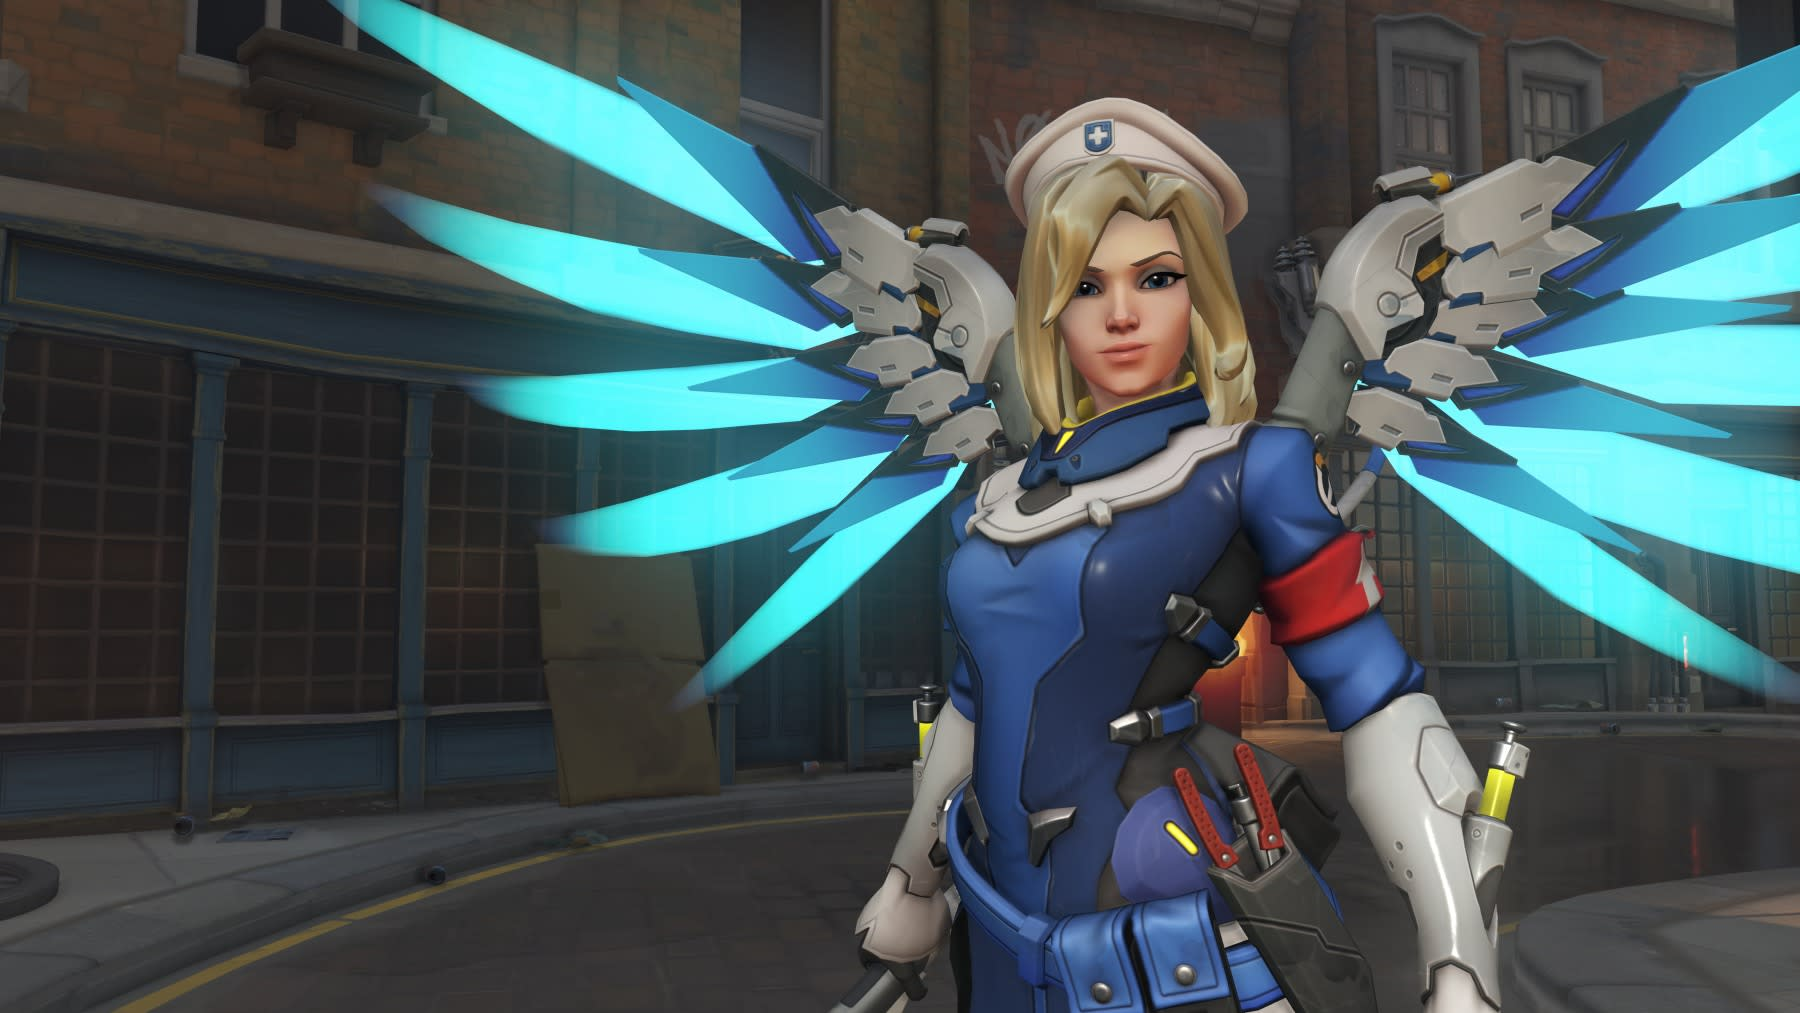 Overwatch' update downgrades Mercy, adds 4K on Xbox One X